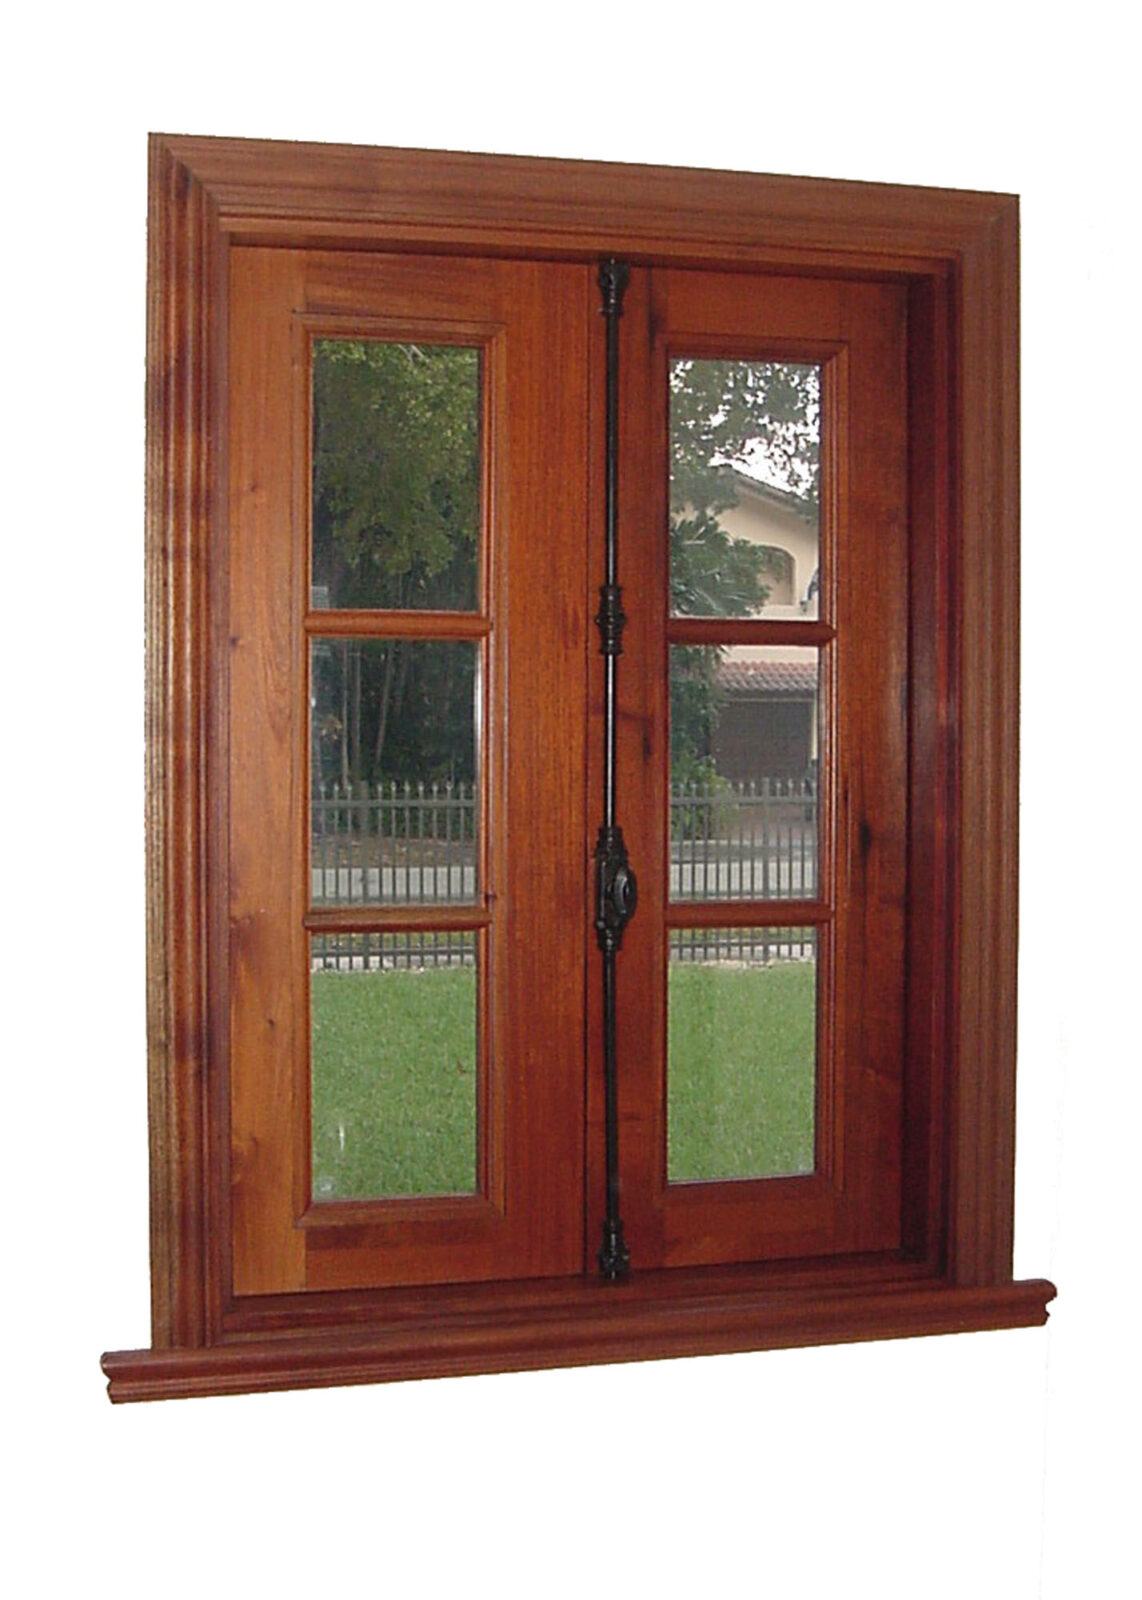 GRANADA MAHOGANY CASEMENT WINDOW